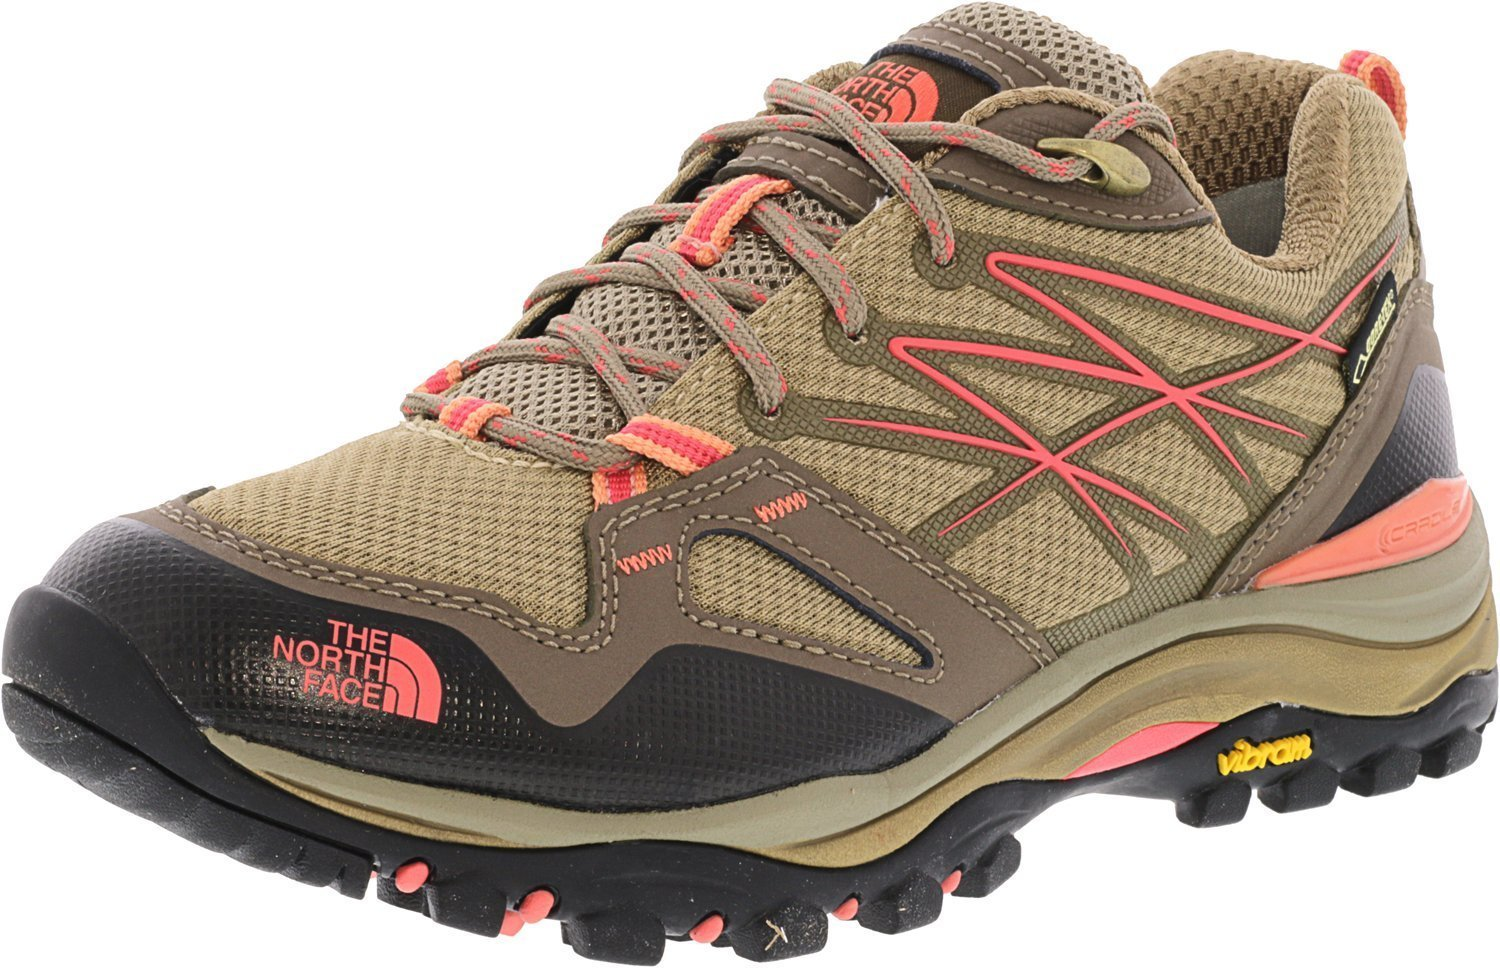 The North Face Hedgehog Fastpack GTX Hiking Shoe - Women's Cub Brown/Fiesta Red, 9.5